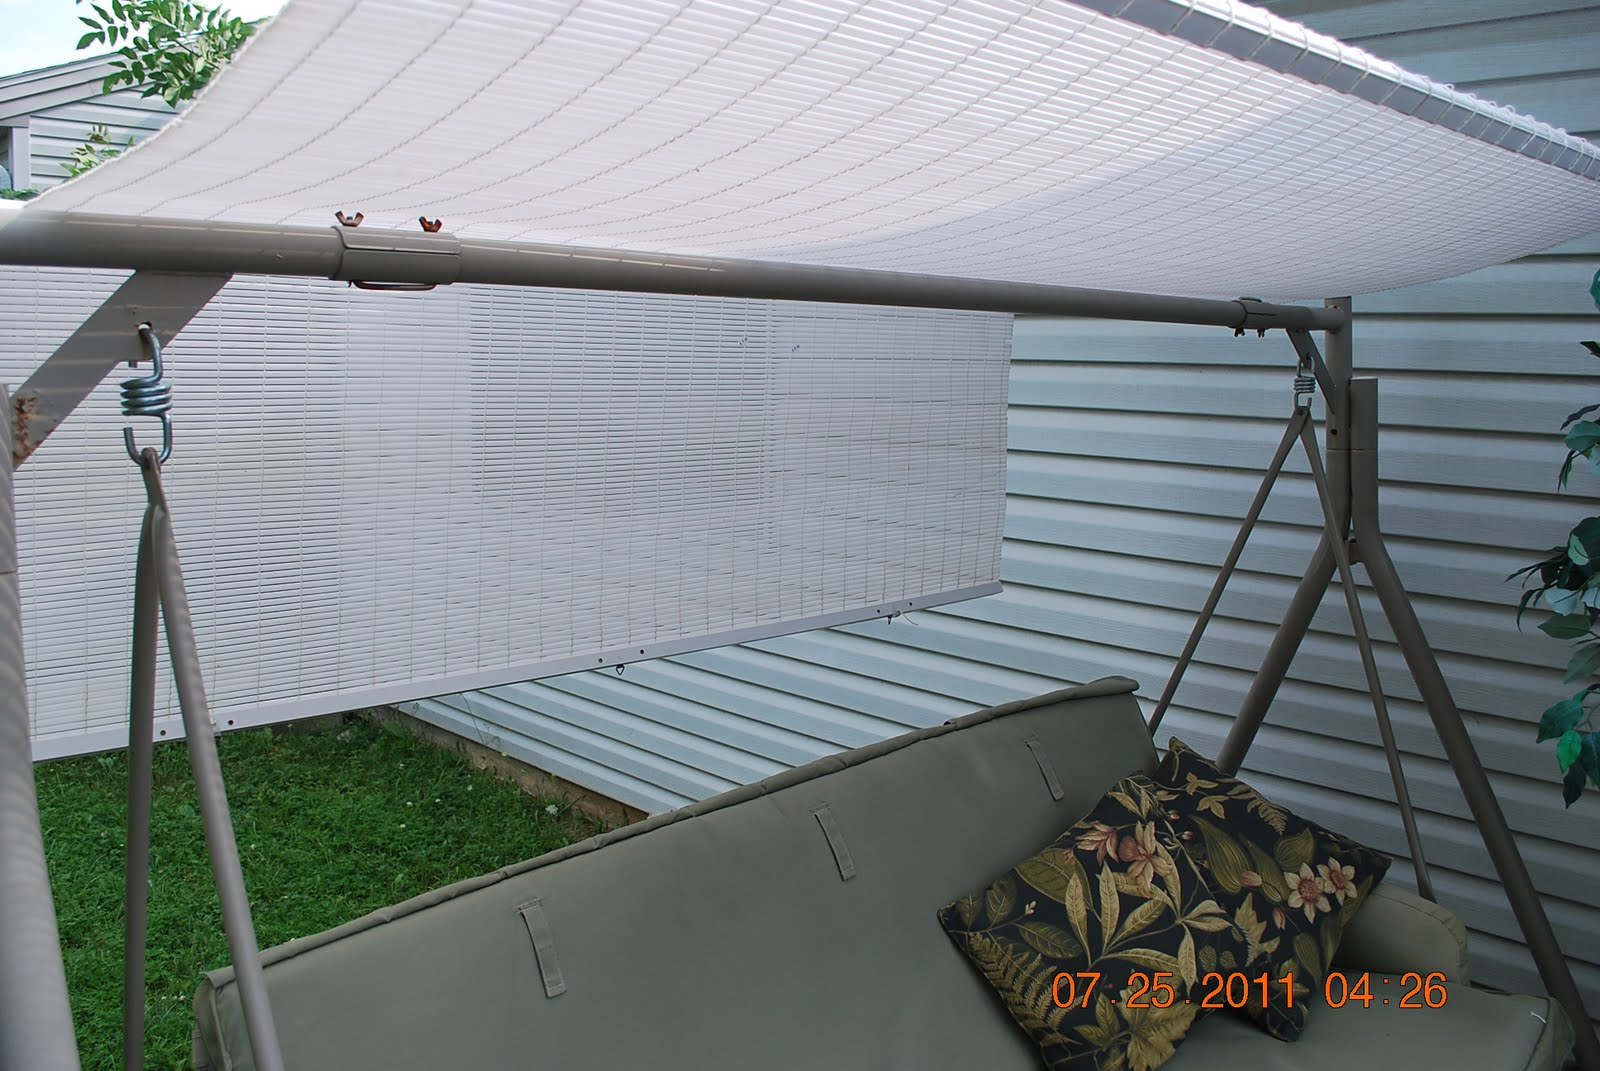 http://joysjotsshots.blogspot.com/2011/07/blind-swing-canopy.html